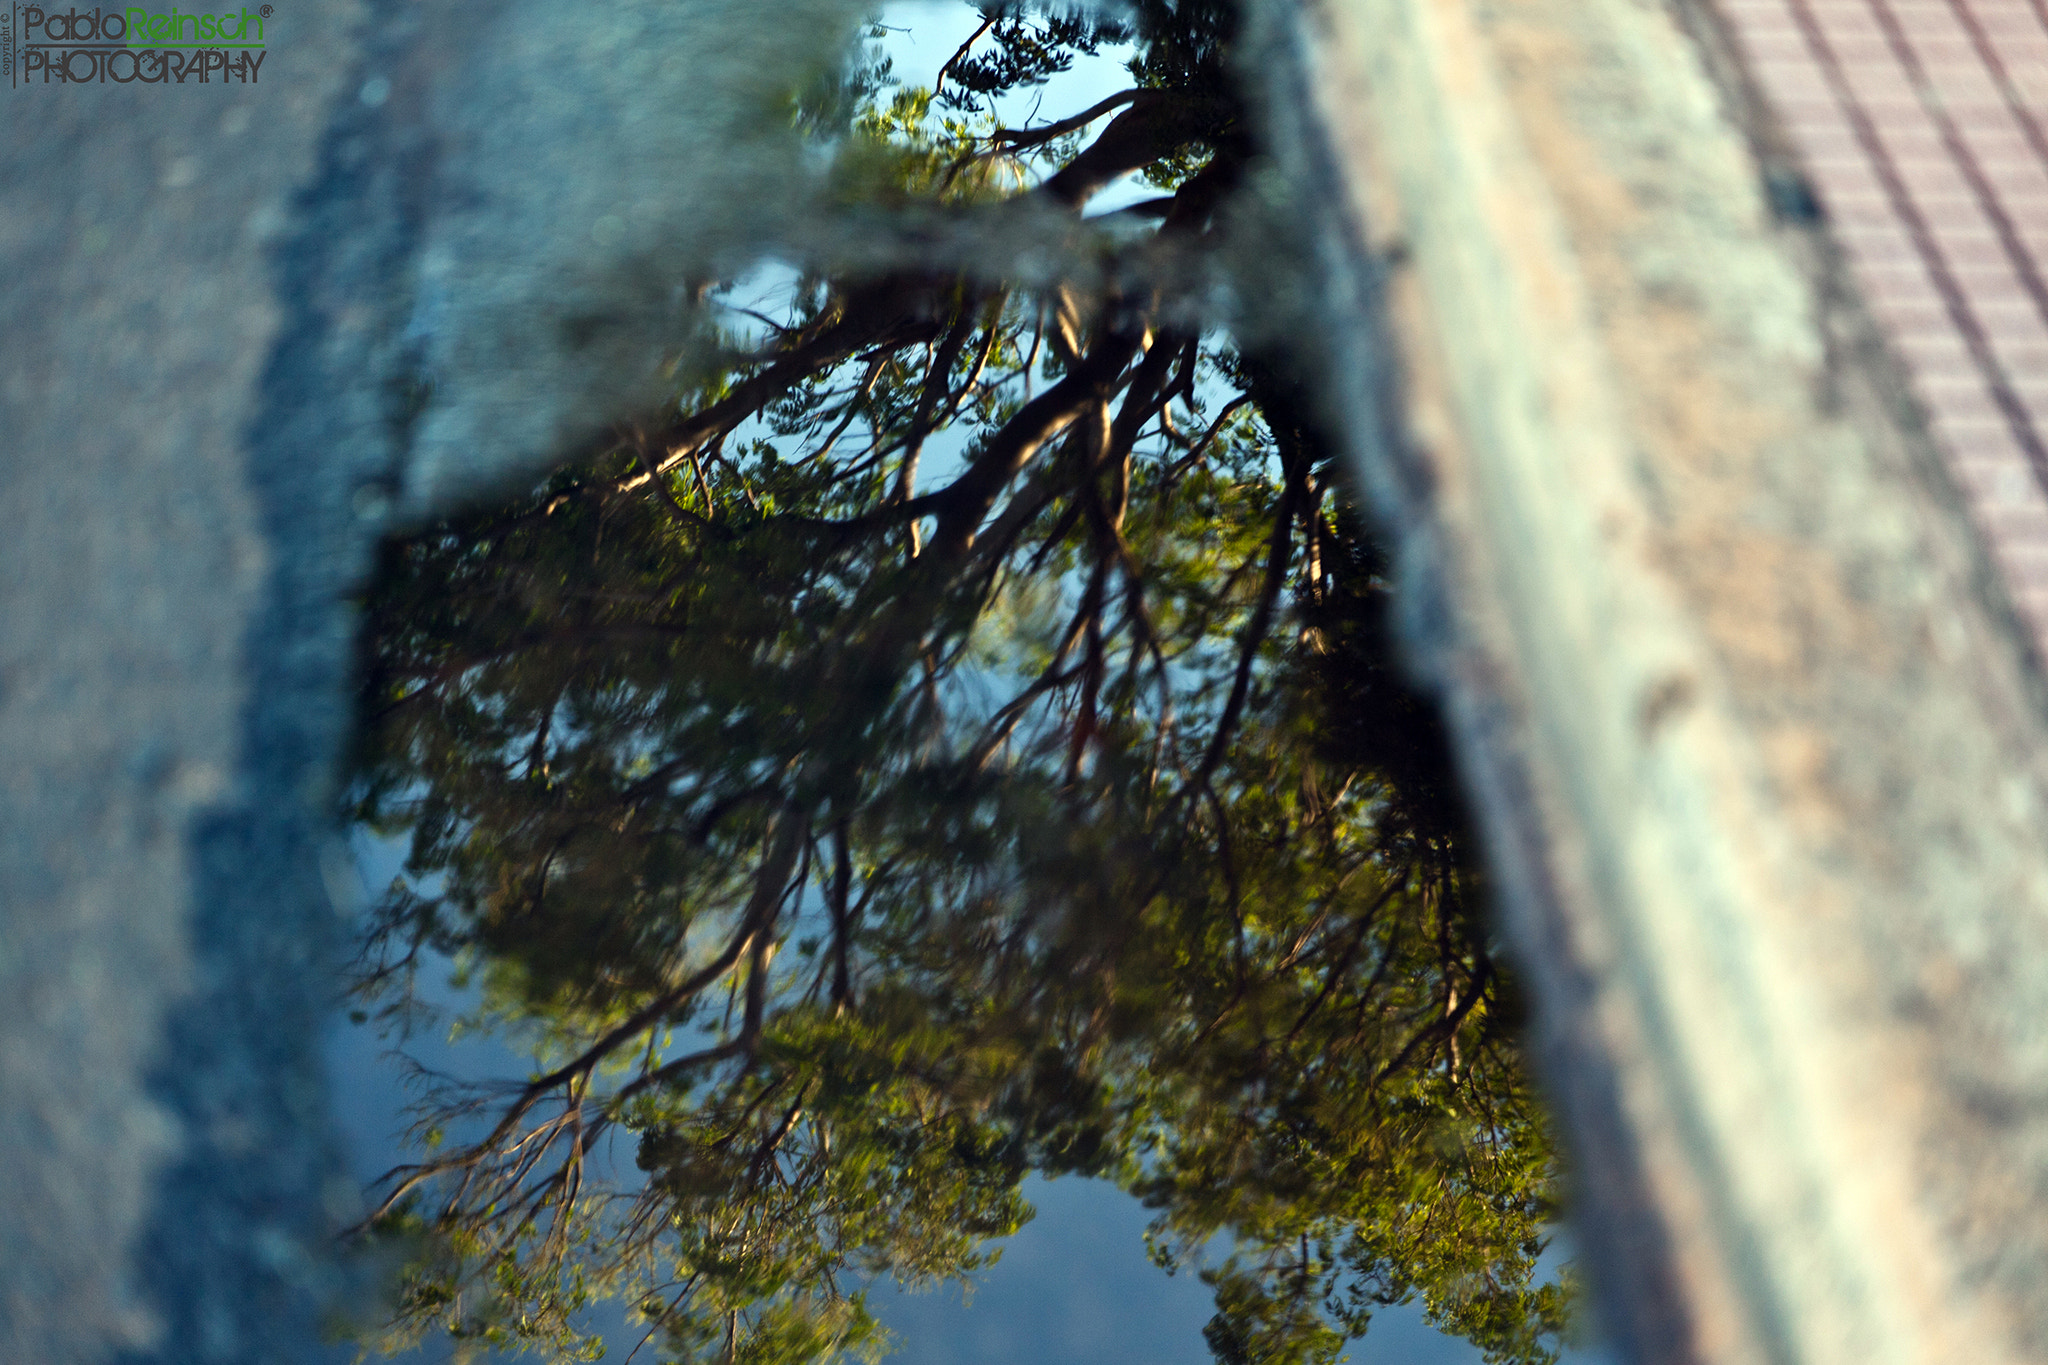 Photograph Reflected tree.- by Pablo Reinsch on 500px